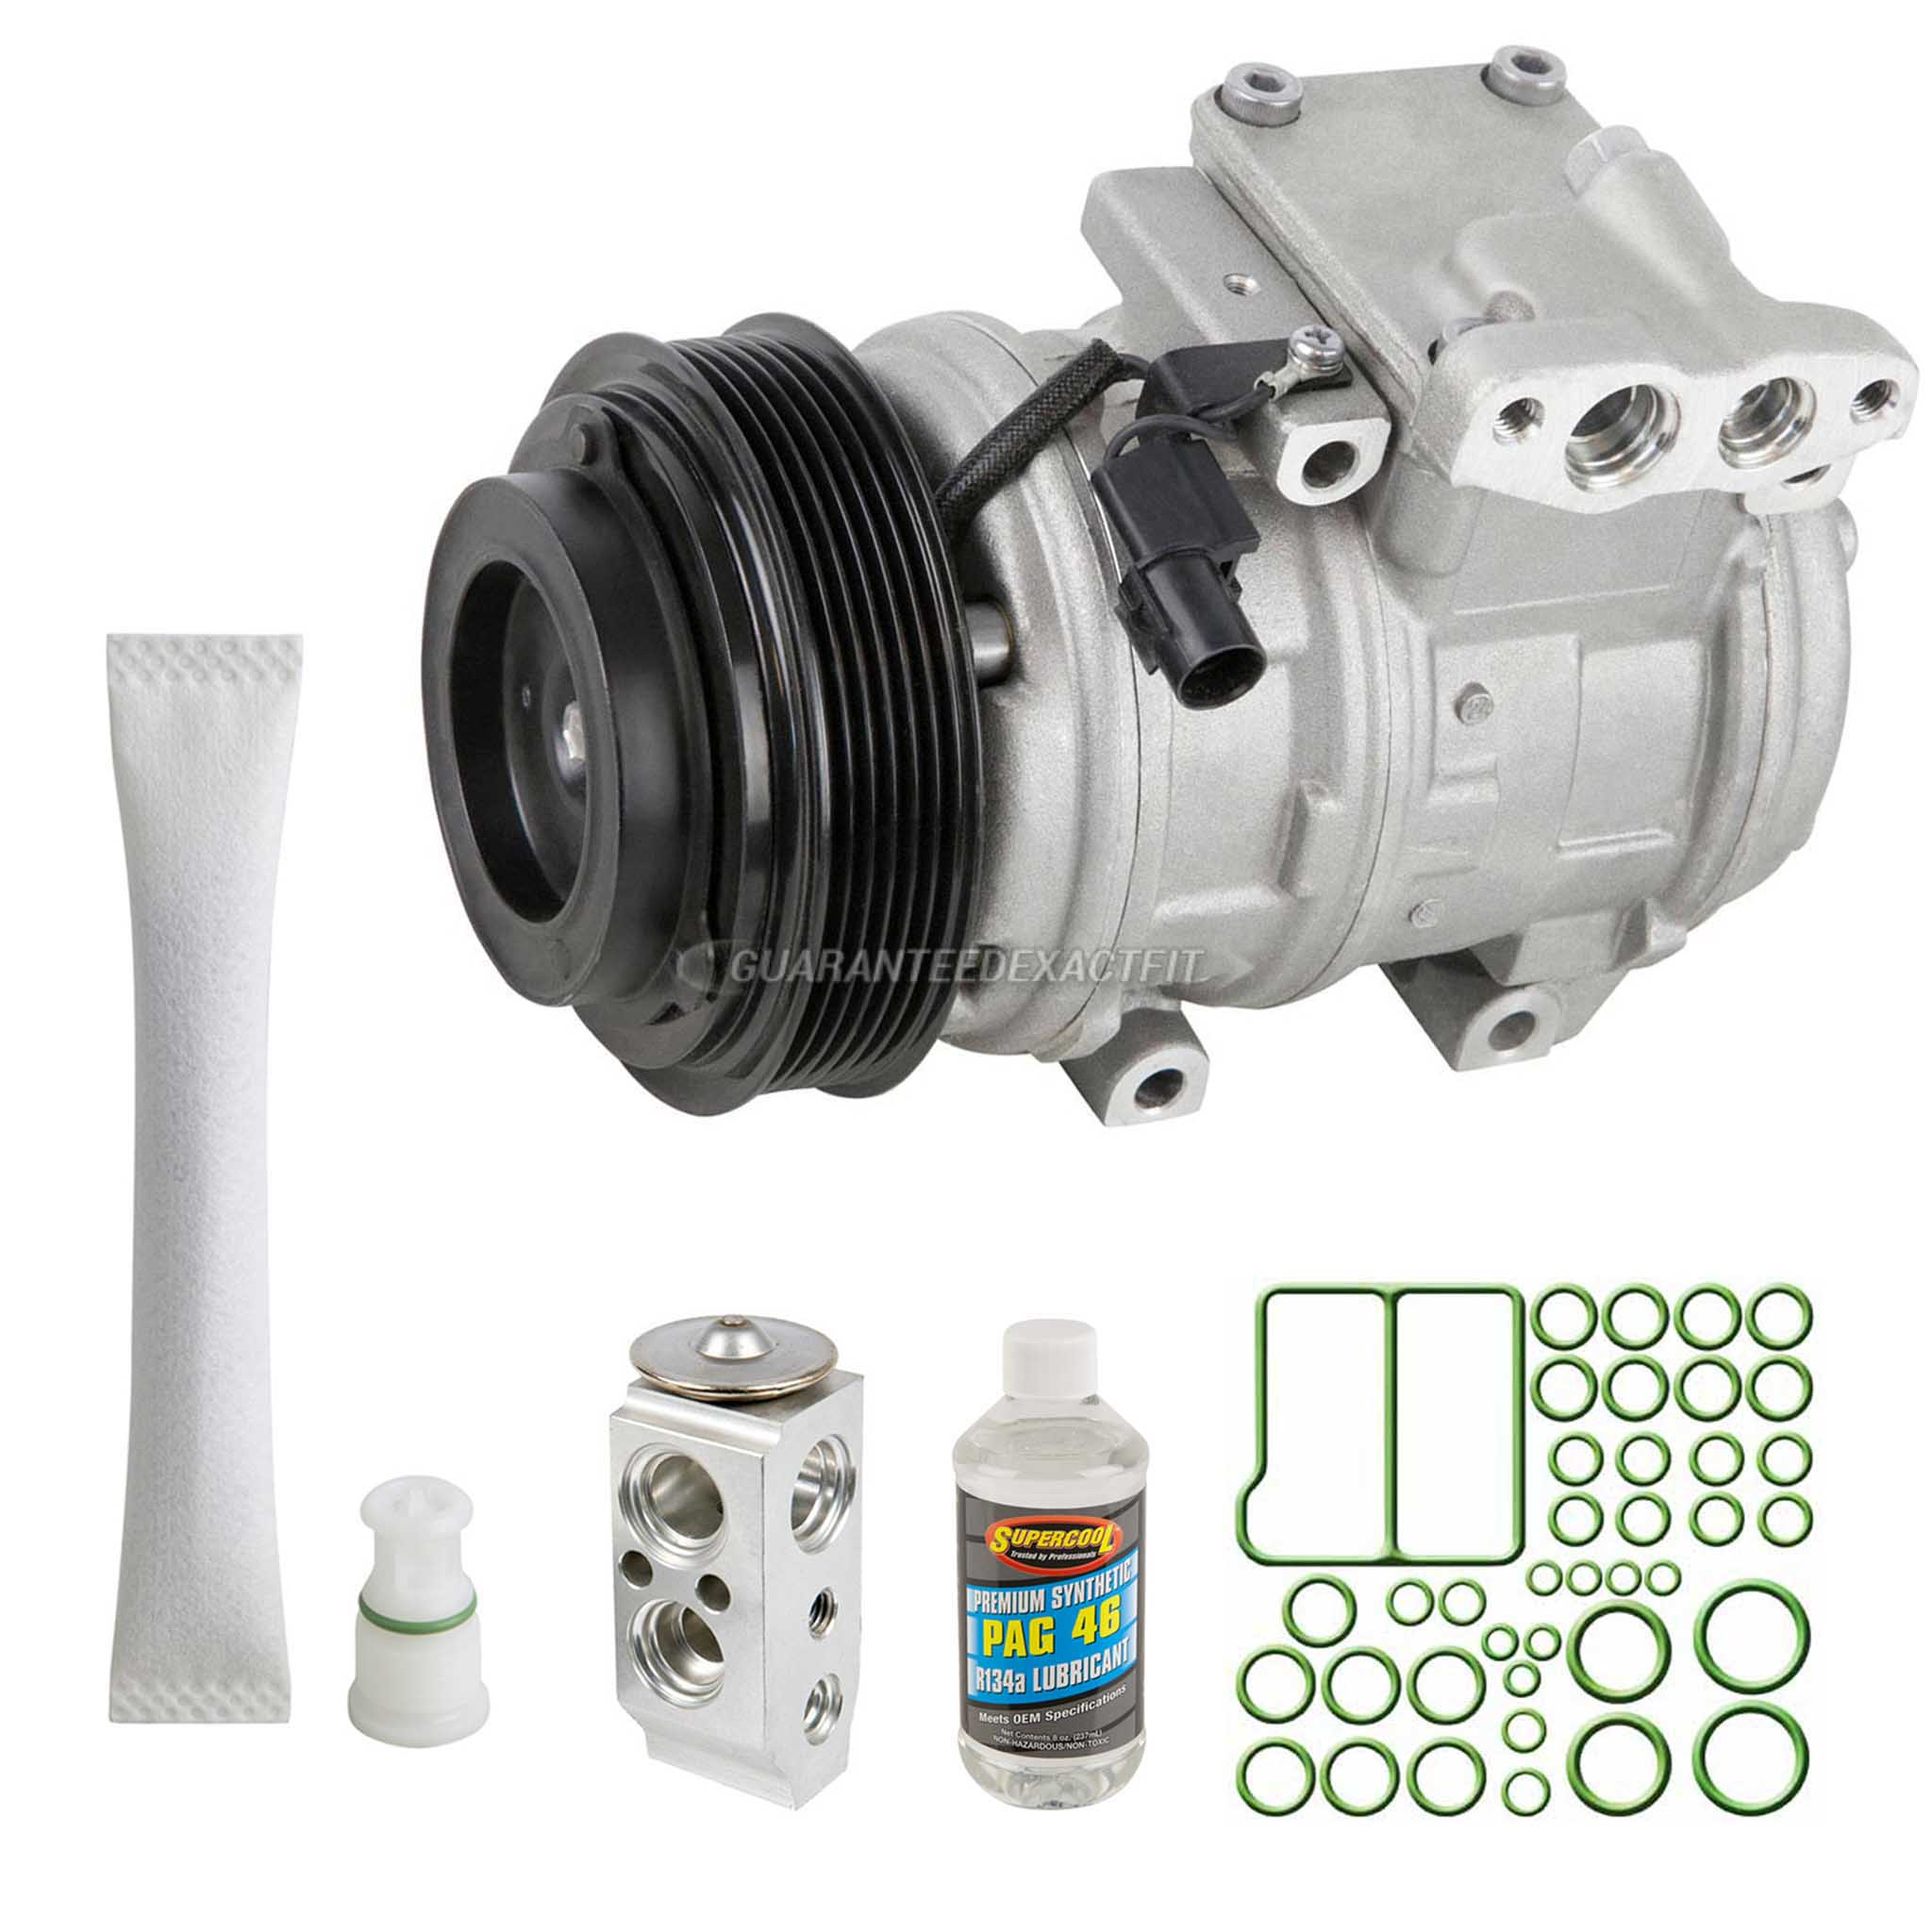 BuyAutoParts 60-84406RN A/C Compressor and Components Kit